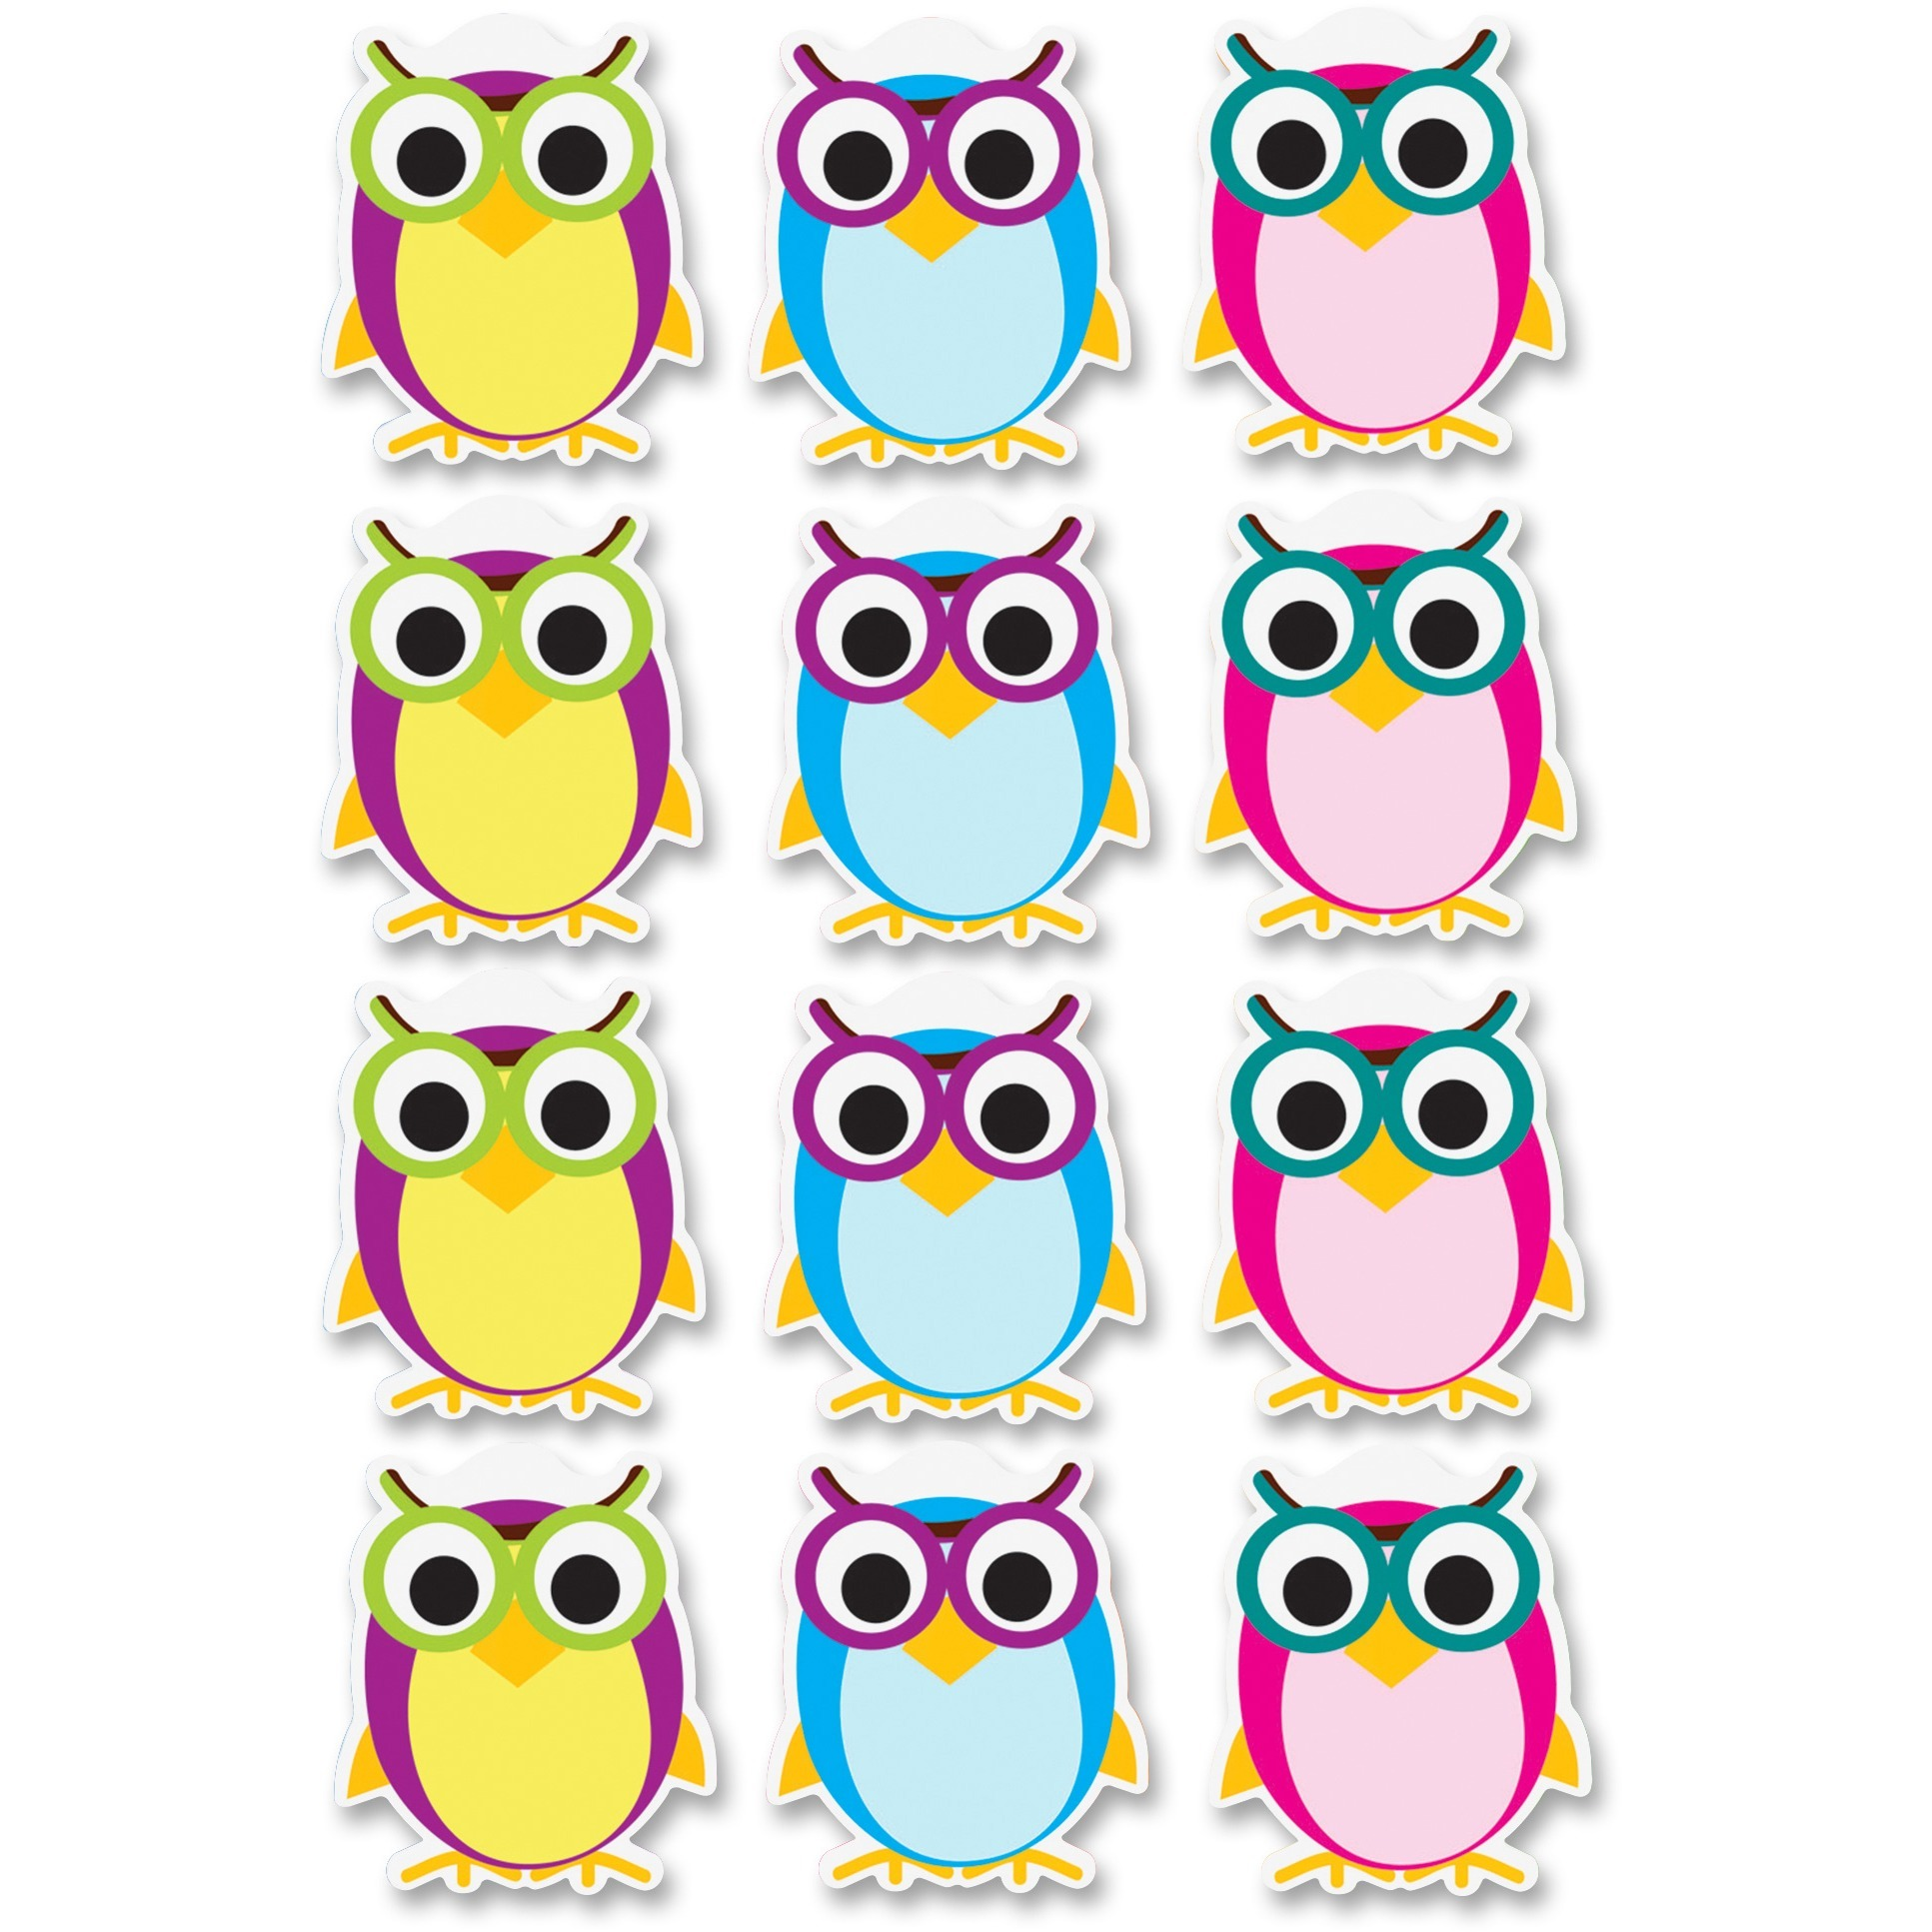 Ashley Dry Erase Owl Magnets